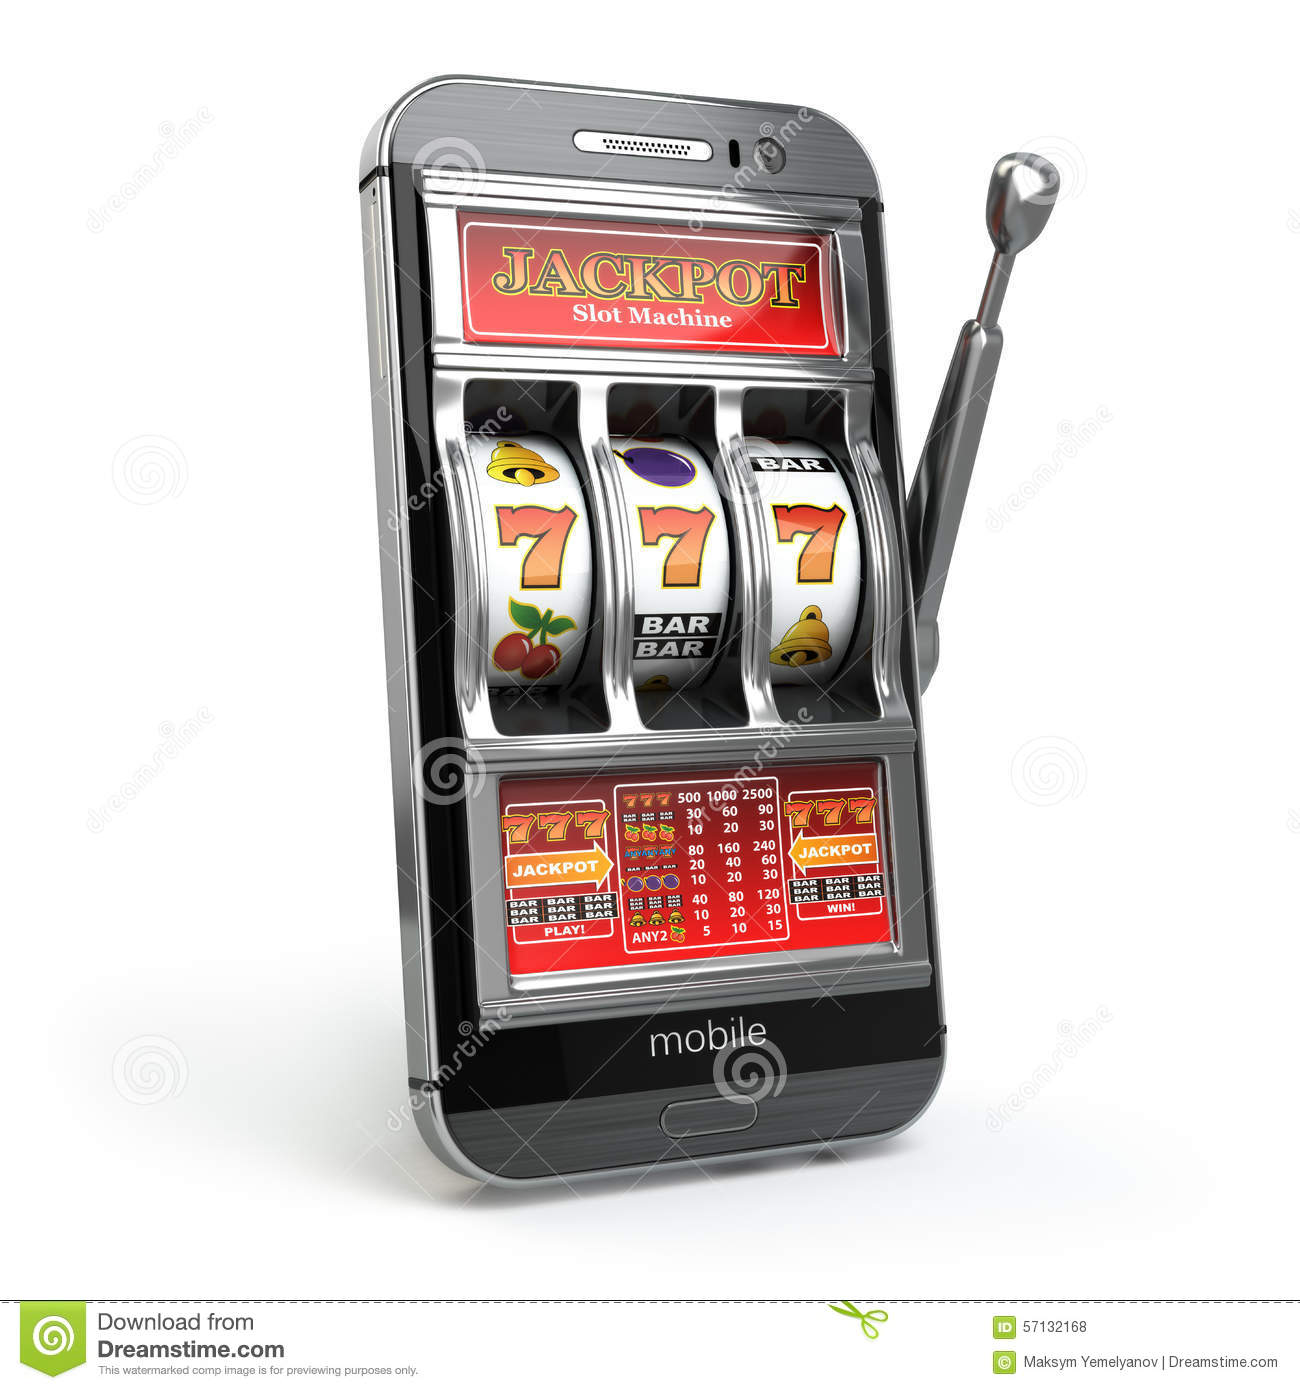 Slot trade in phones